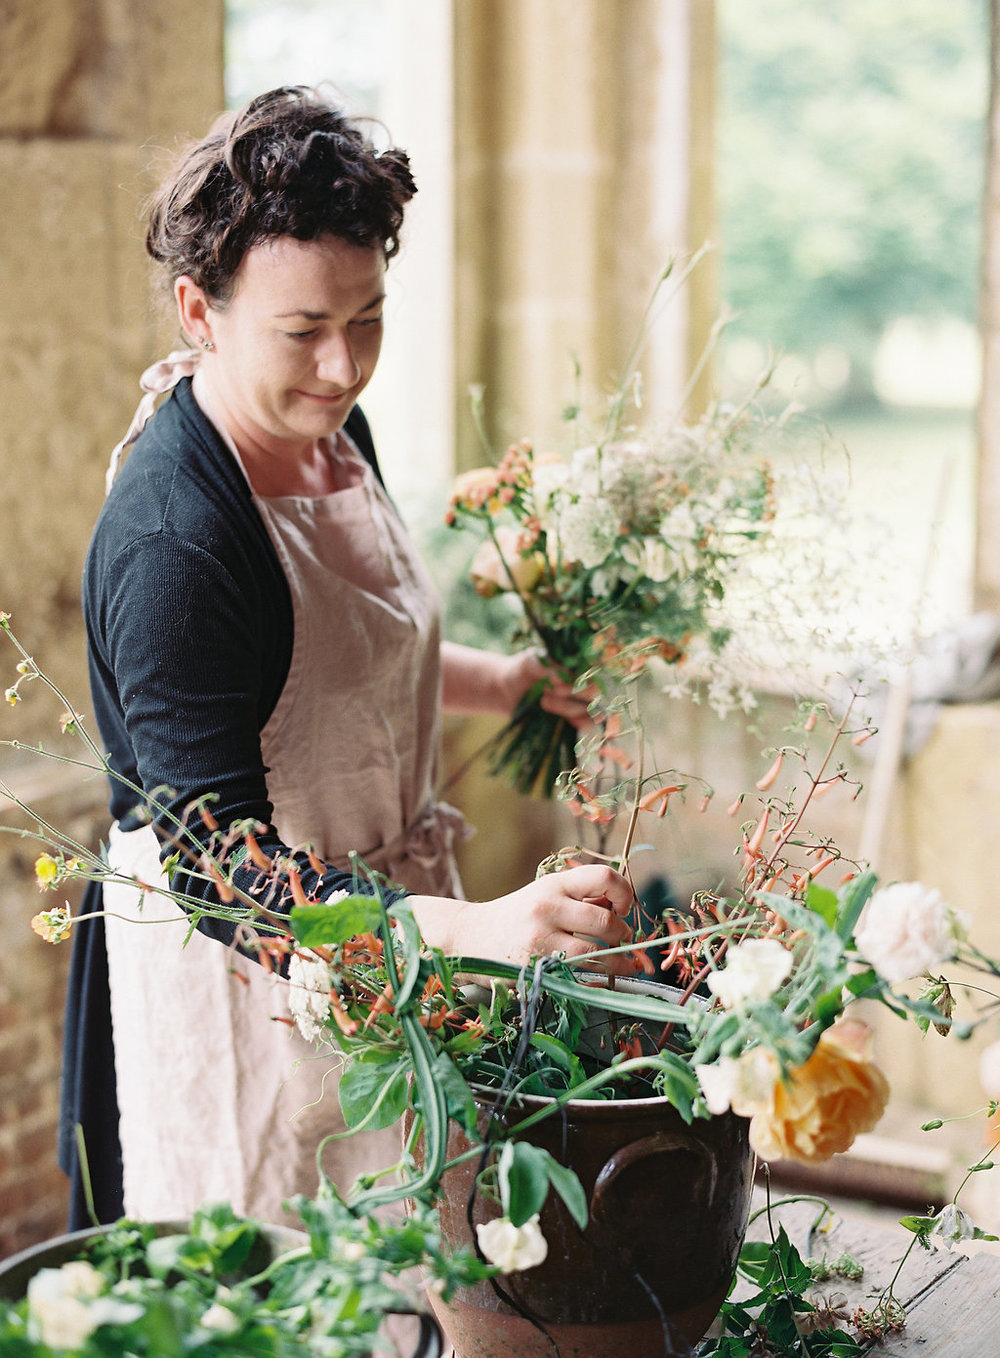 Litha Floral Workshop and Buttonhole Tutorial on cottagehill.co45.jpg